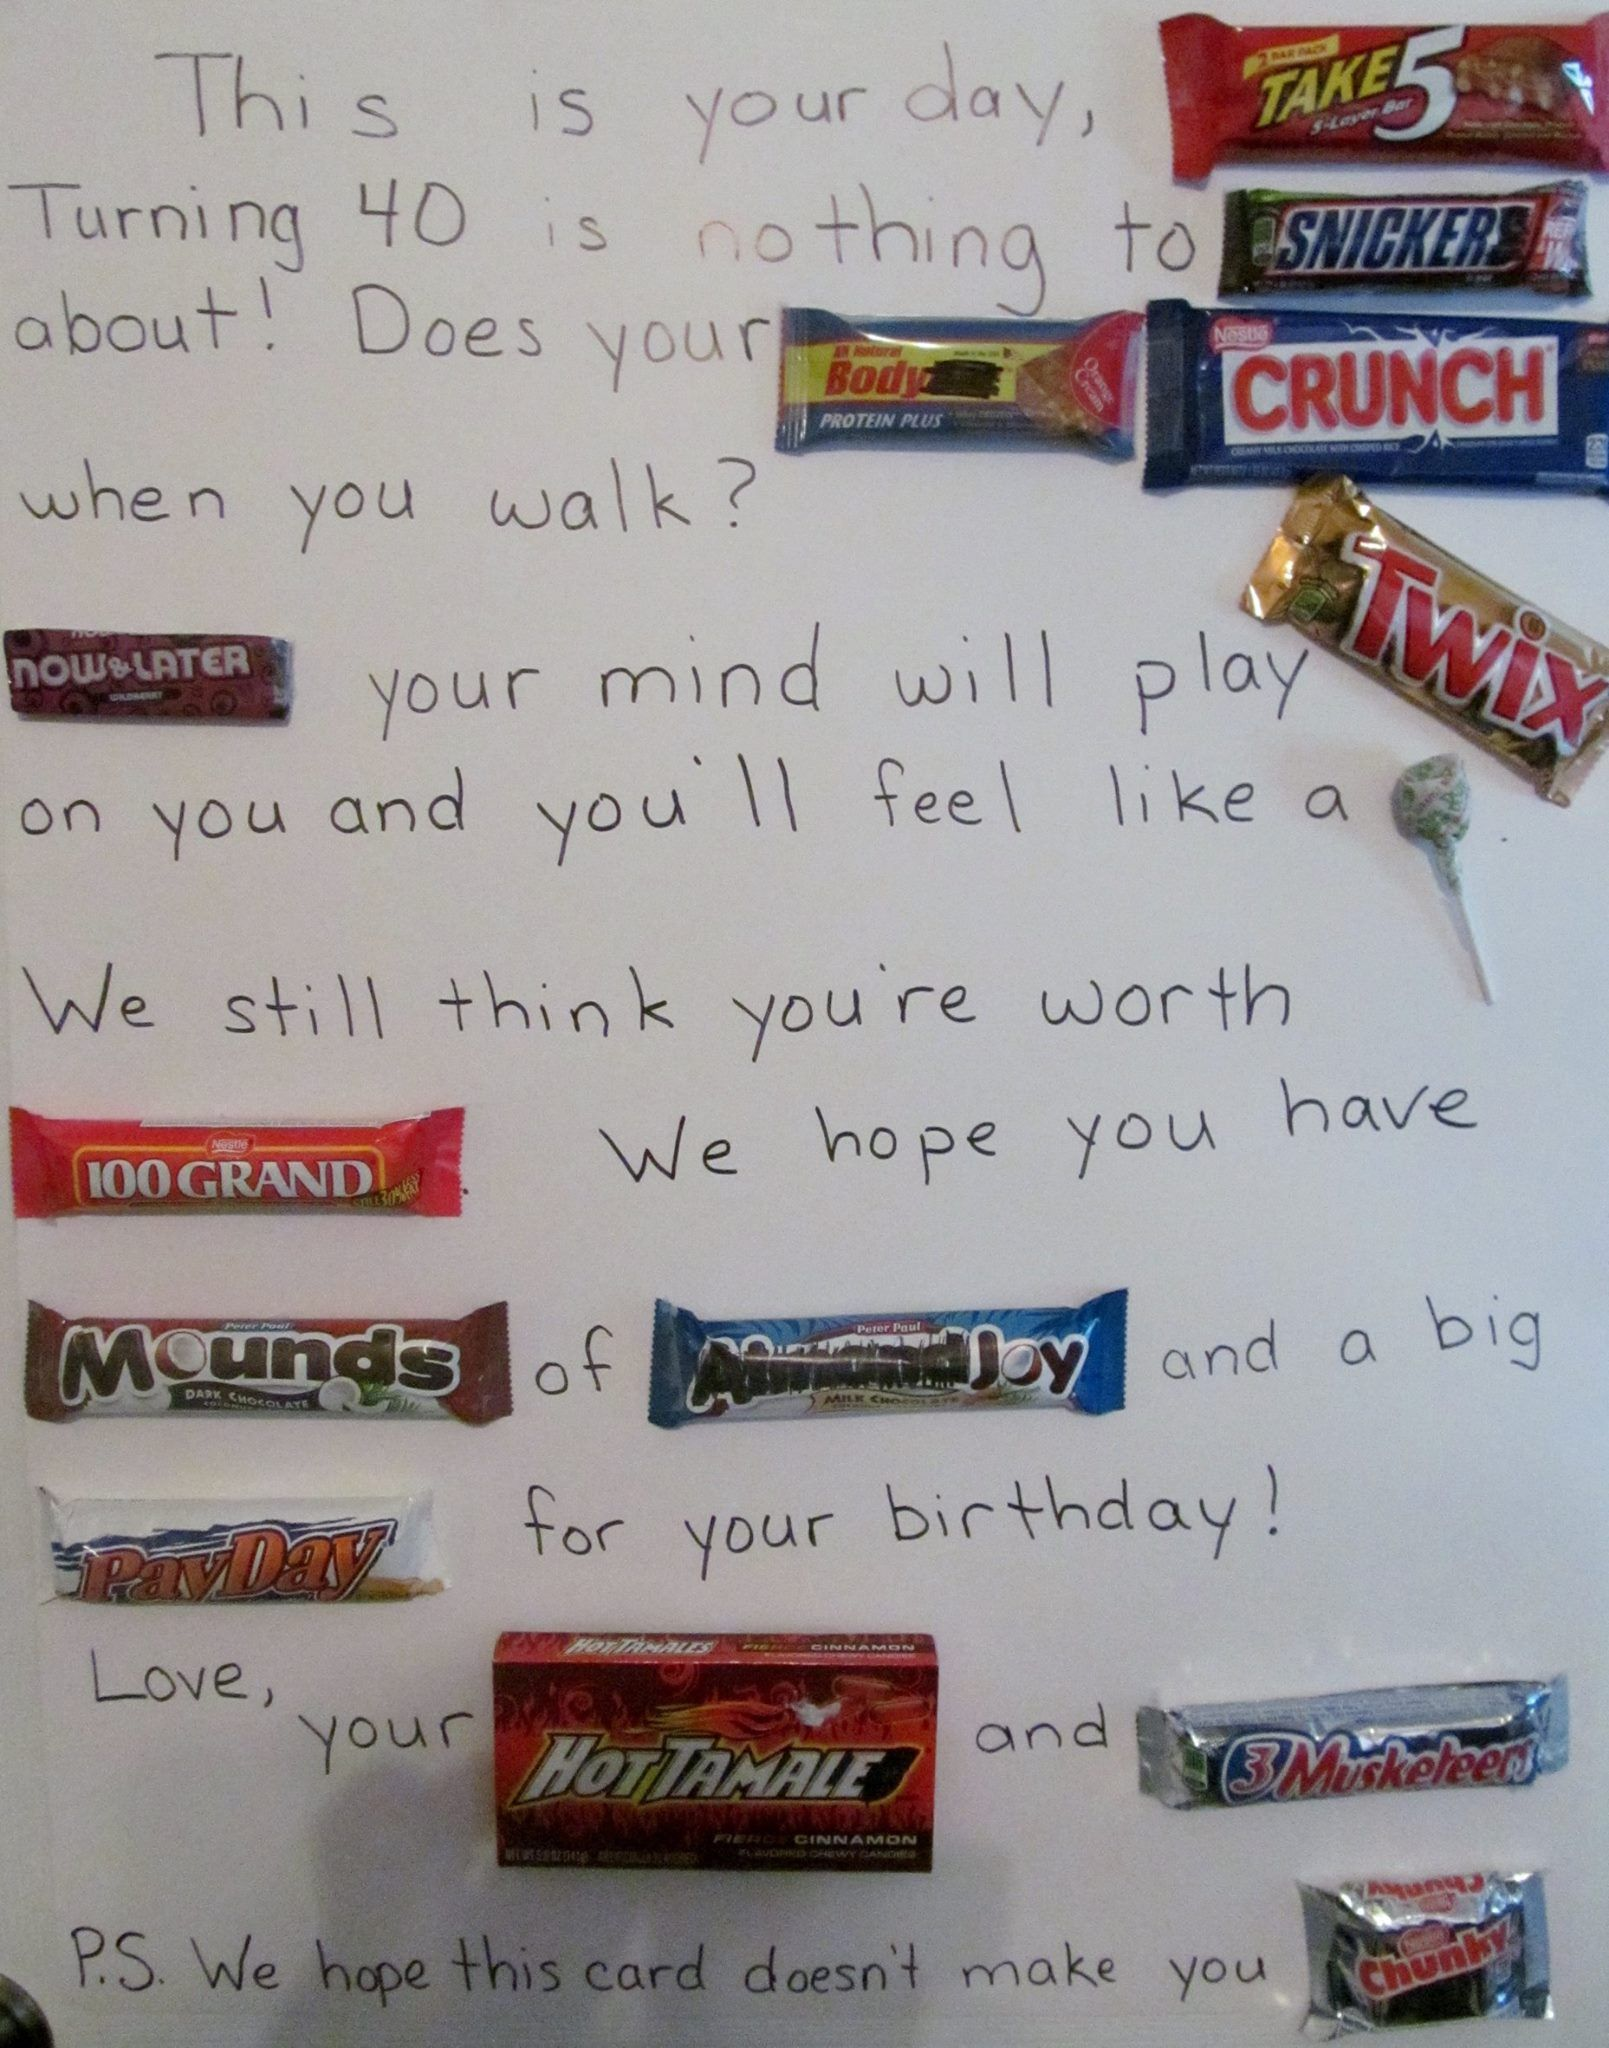 40th Birthday Card Made Using Different Types Of Candy As